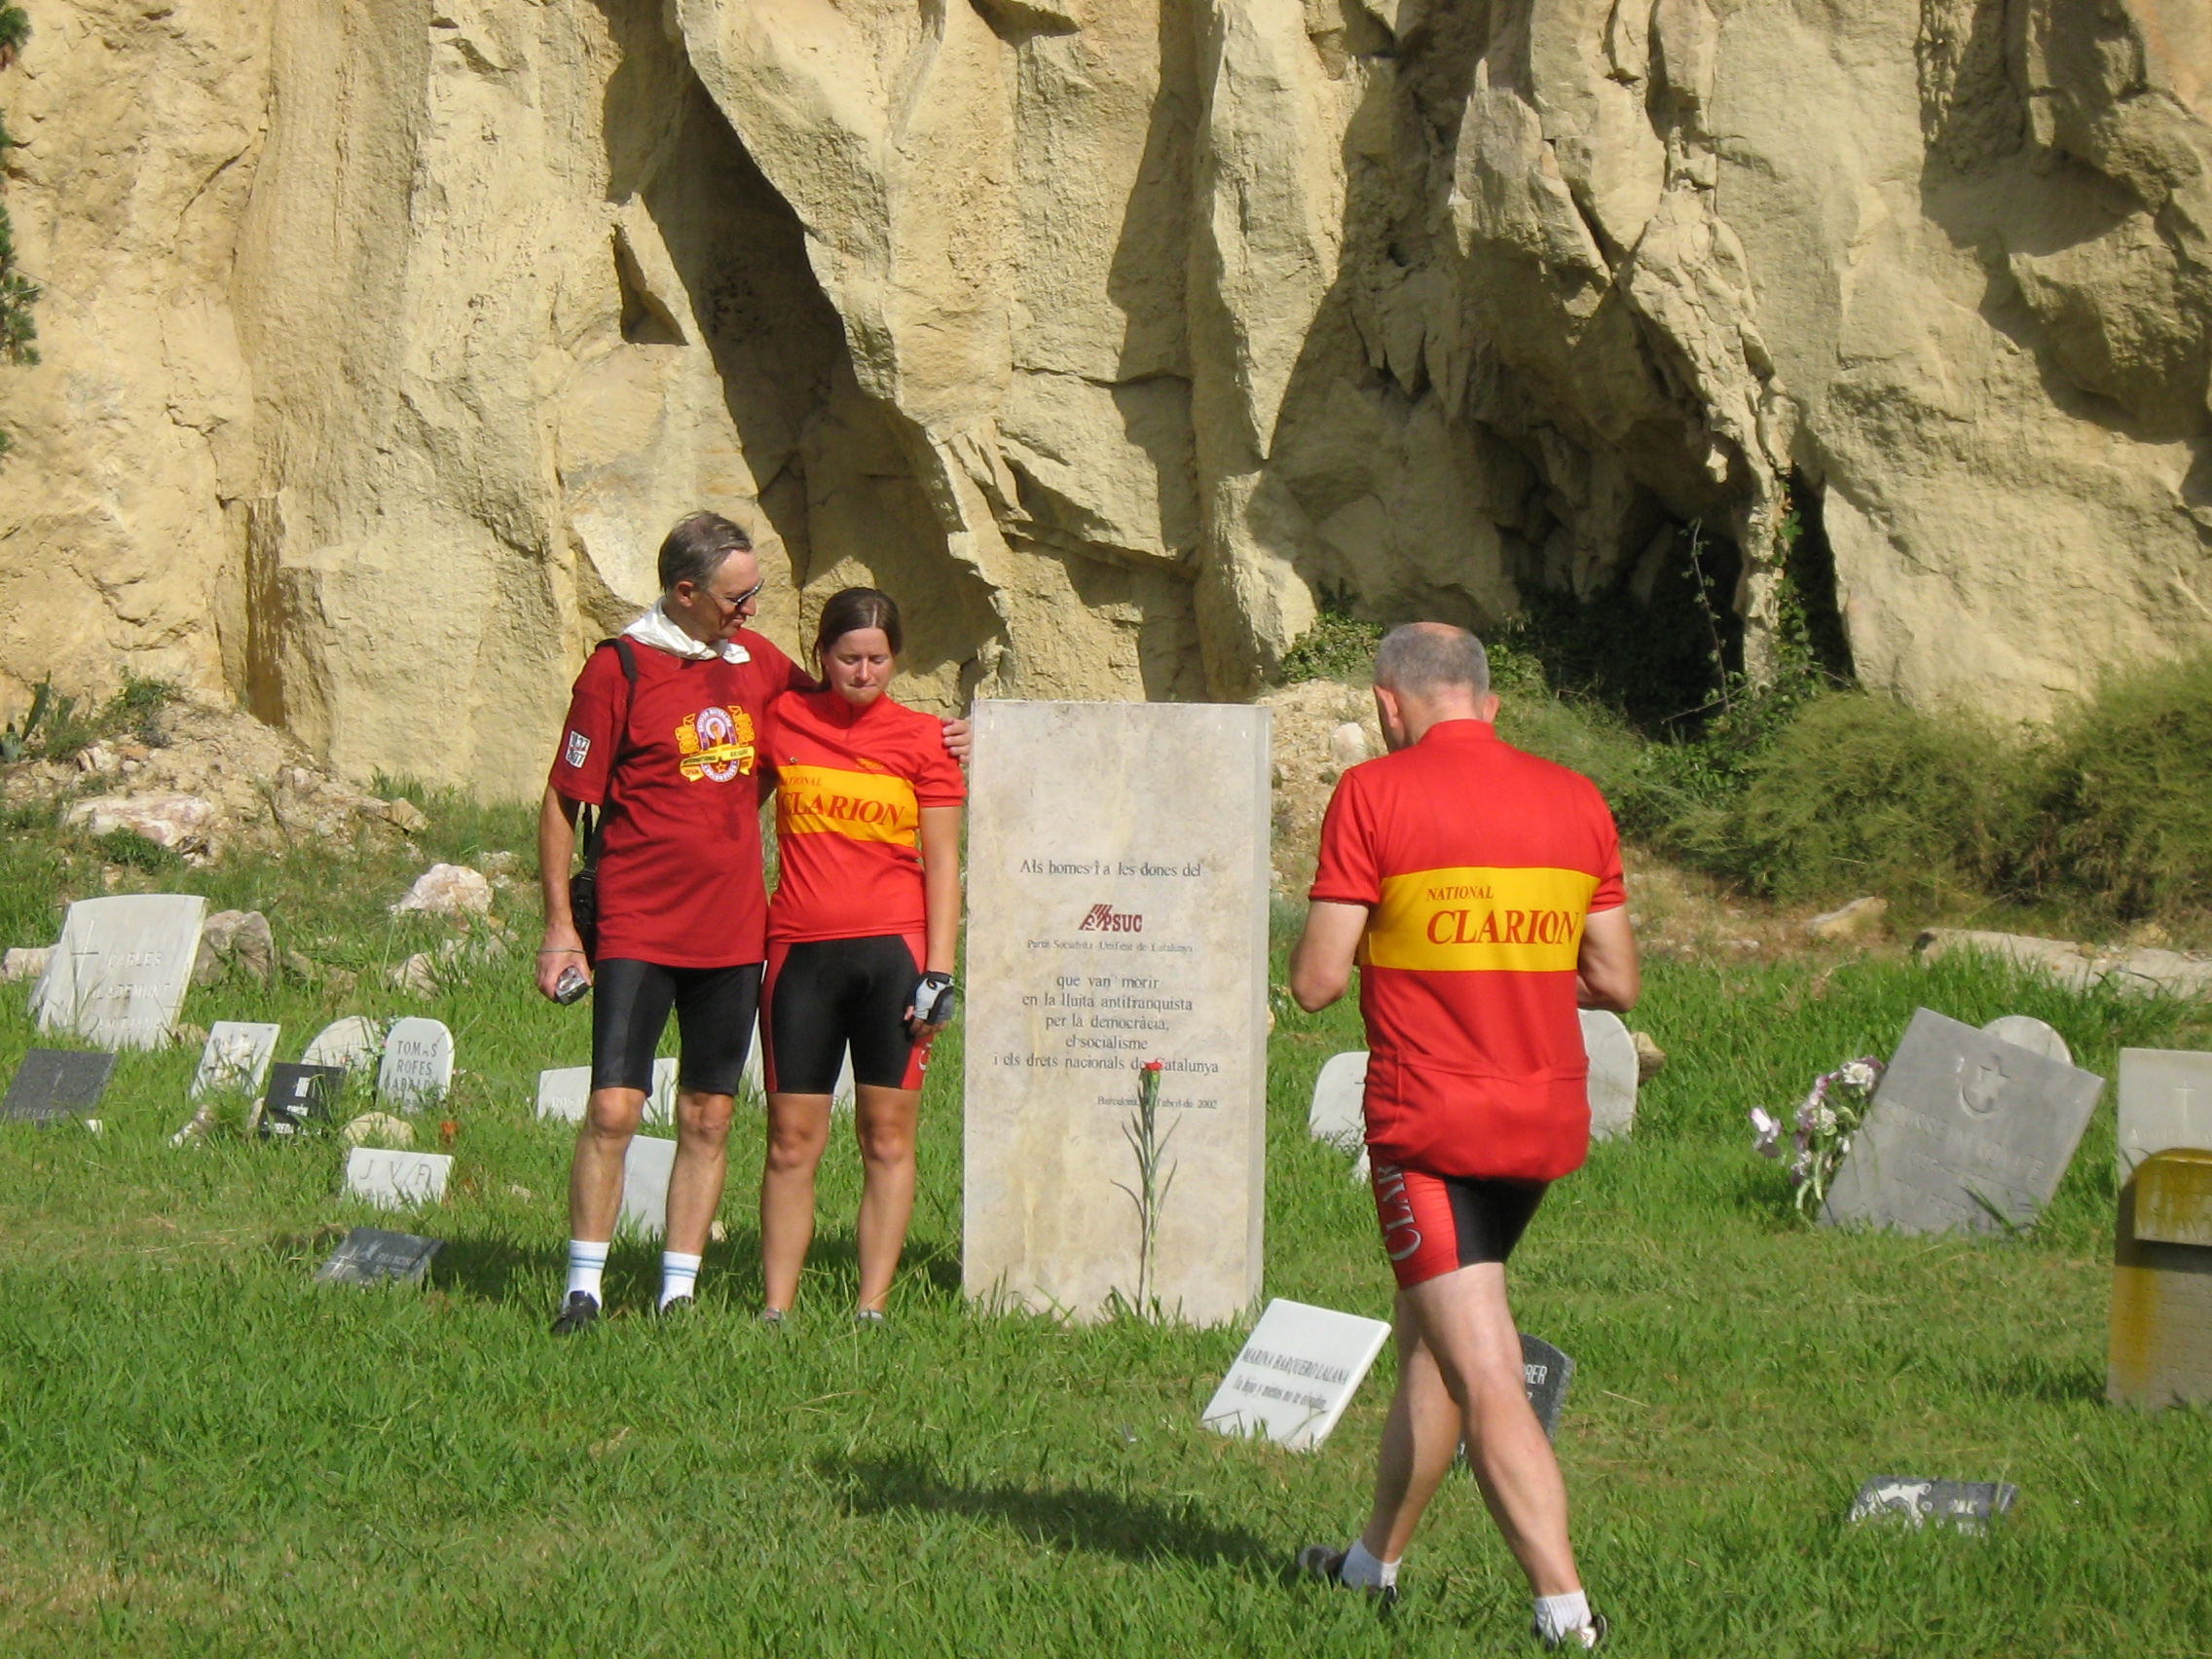 Colin beside Ruth while Charles leaves carnations at a monument to Austrian International Brigaders